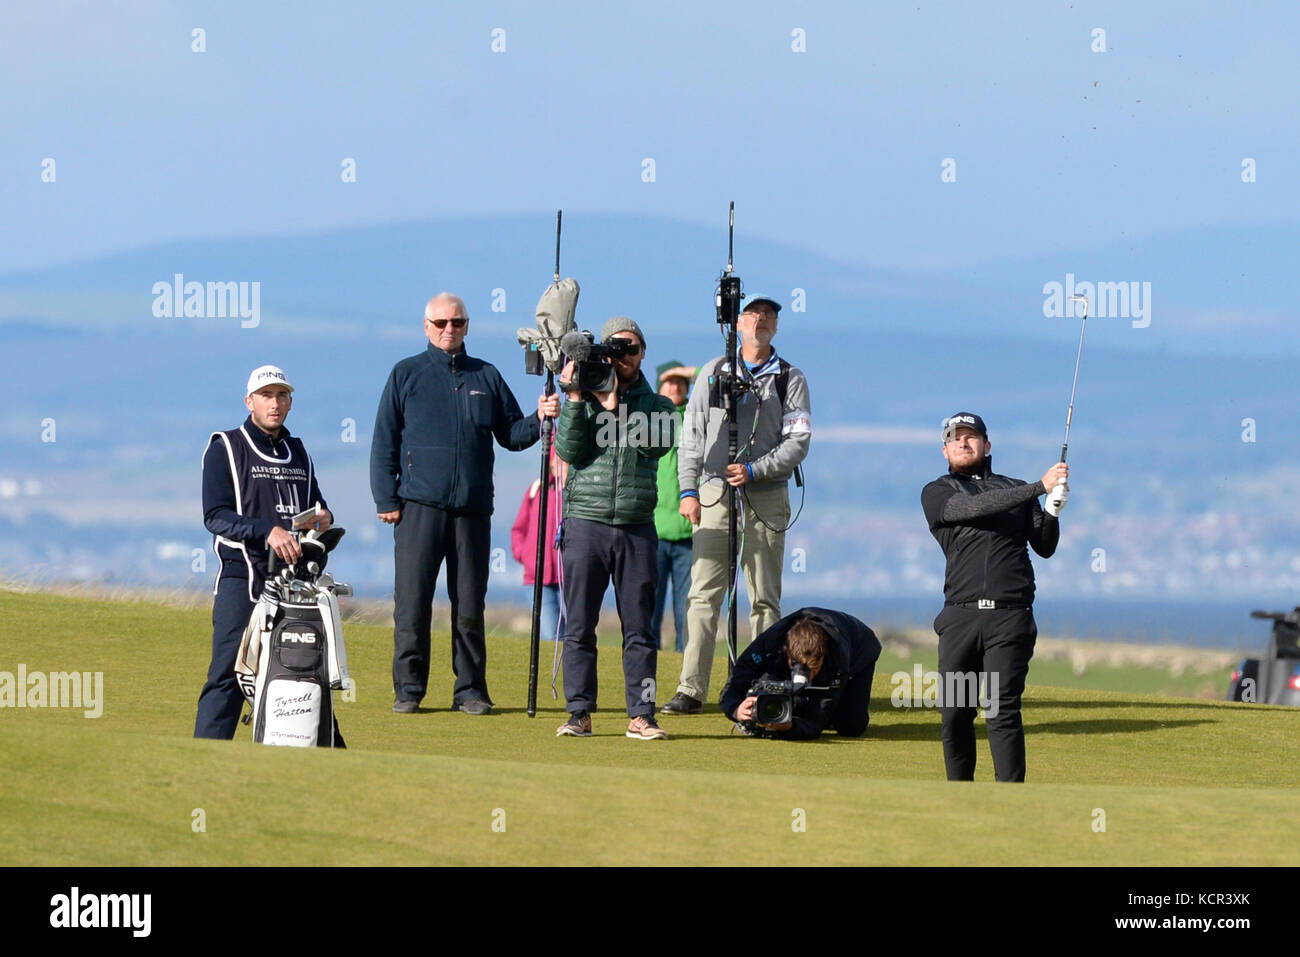 St Andrews, Scotland, United Kingdom. 07th Oct, 2017. Tyrell Hatton (R) maintains a commanding lead as he plays Stock Photo